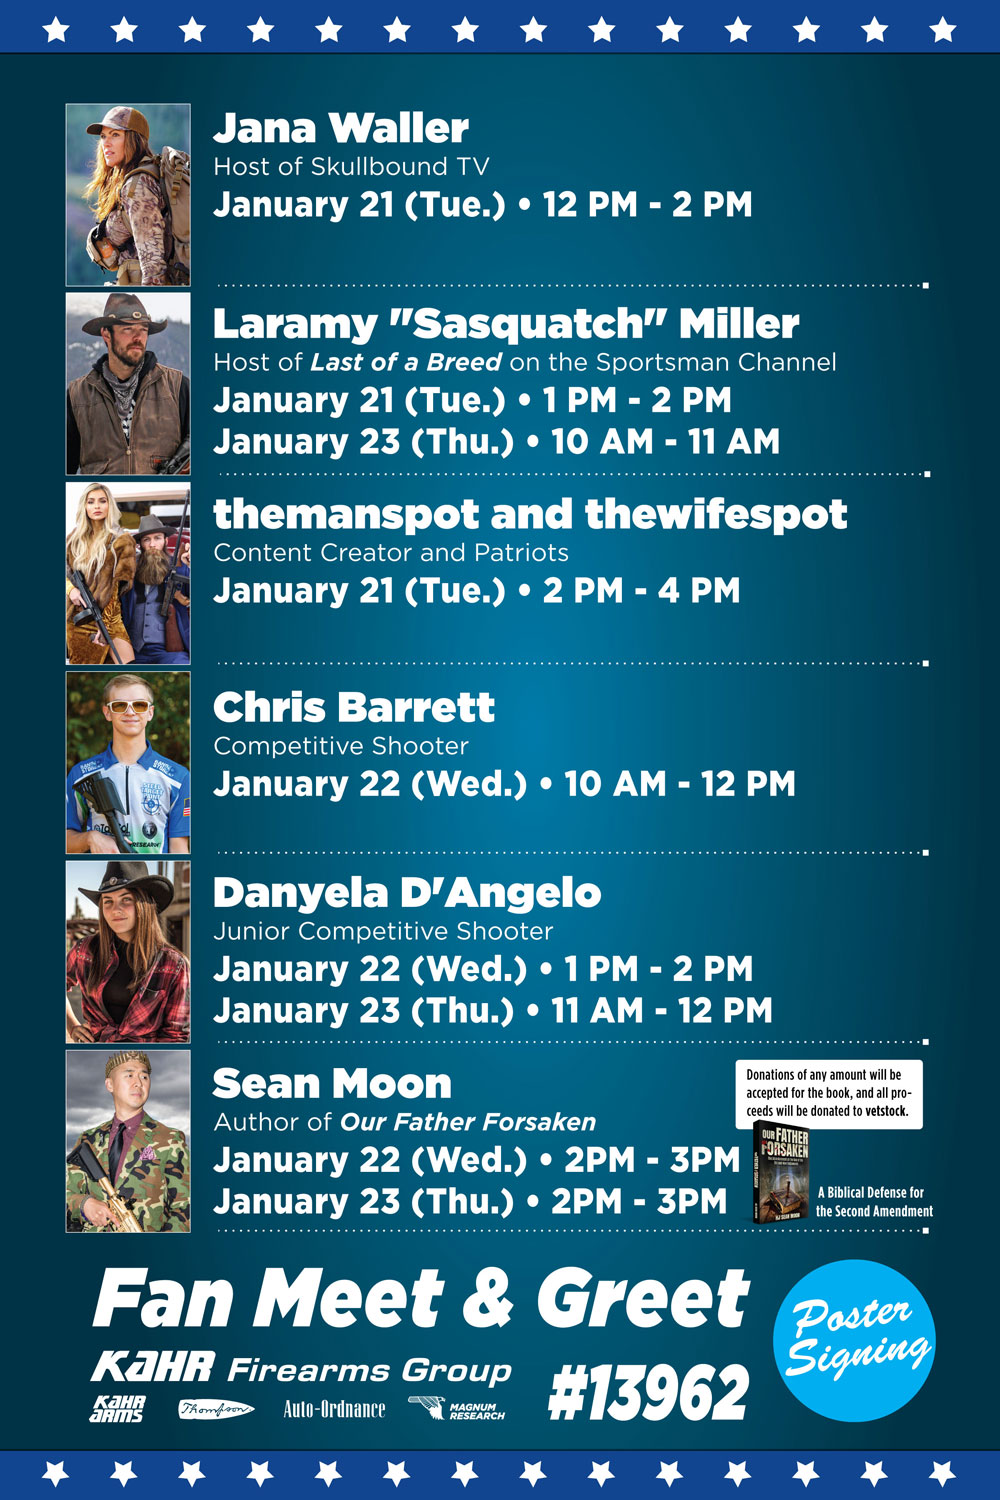 Kahr Firearms Group Attends Its 26th SHOT Show with Celebrity Line-Up In Booth